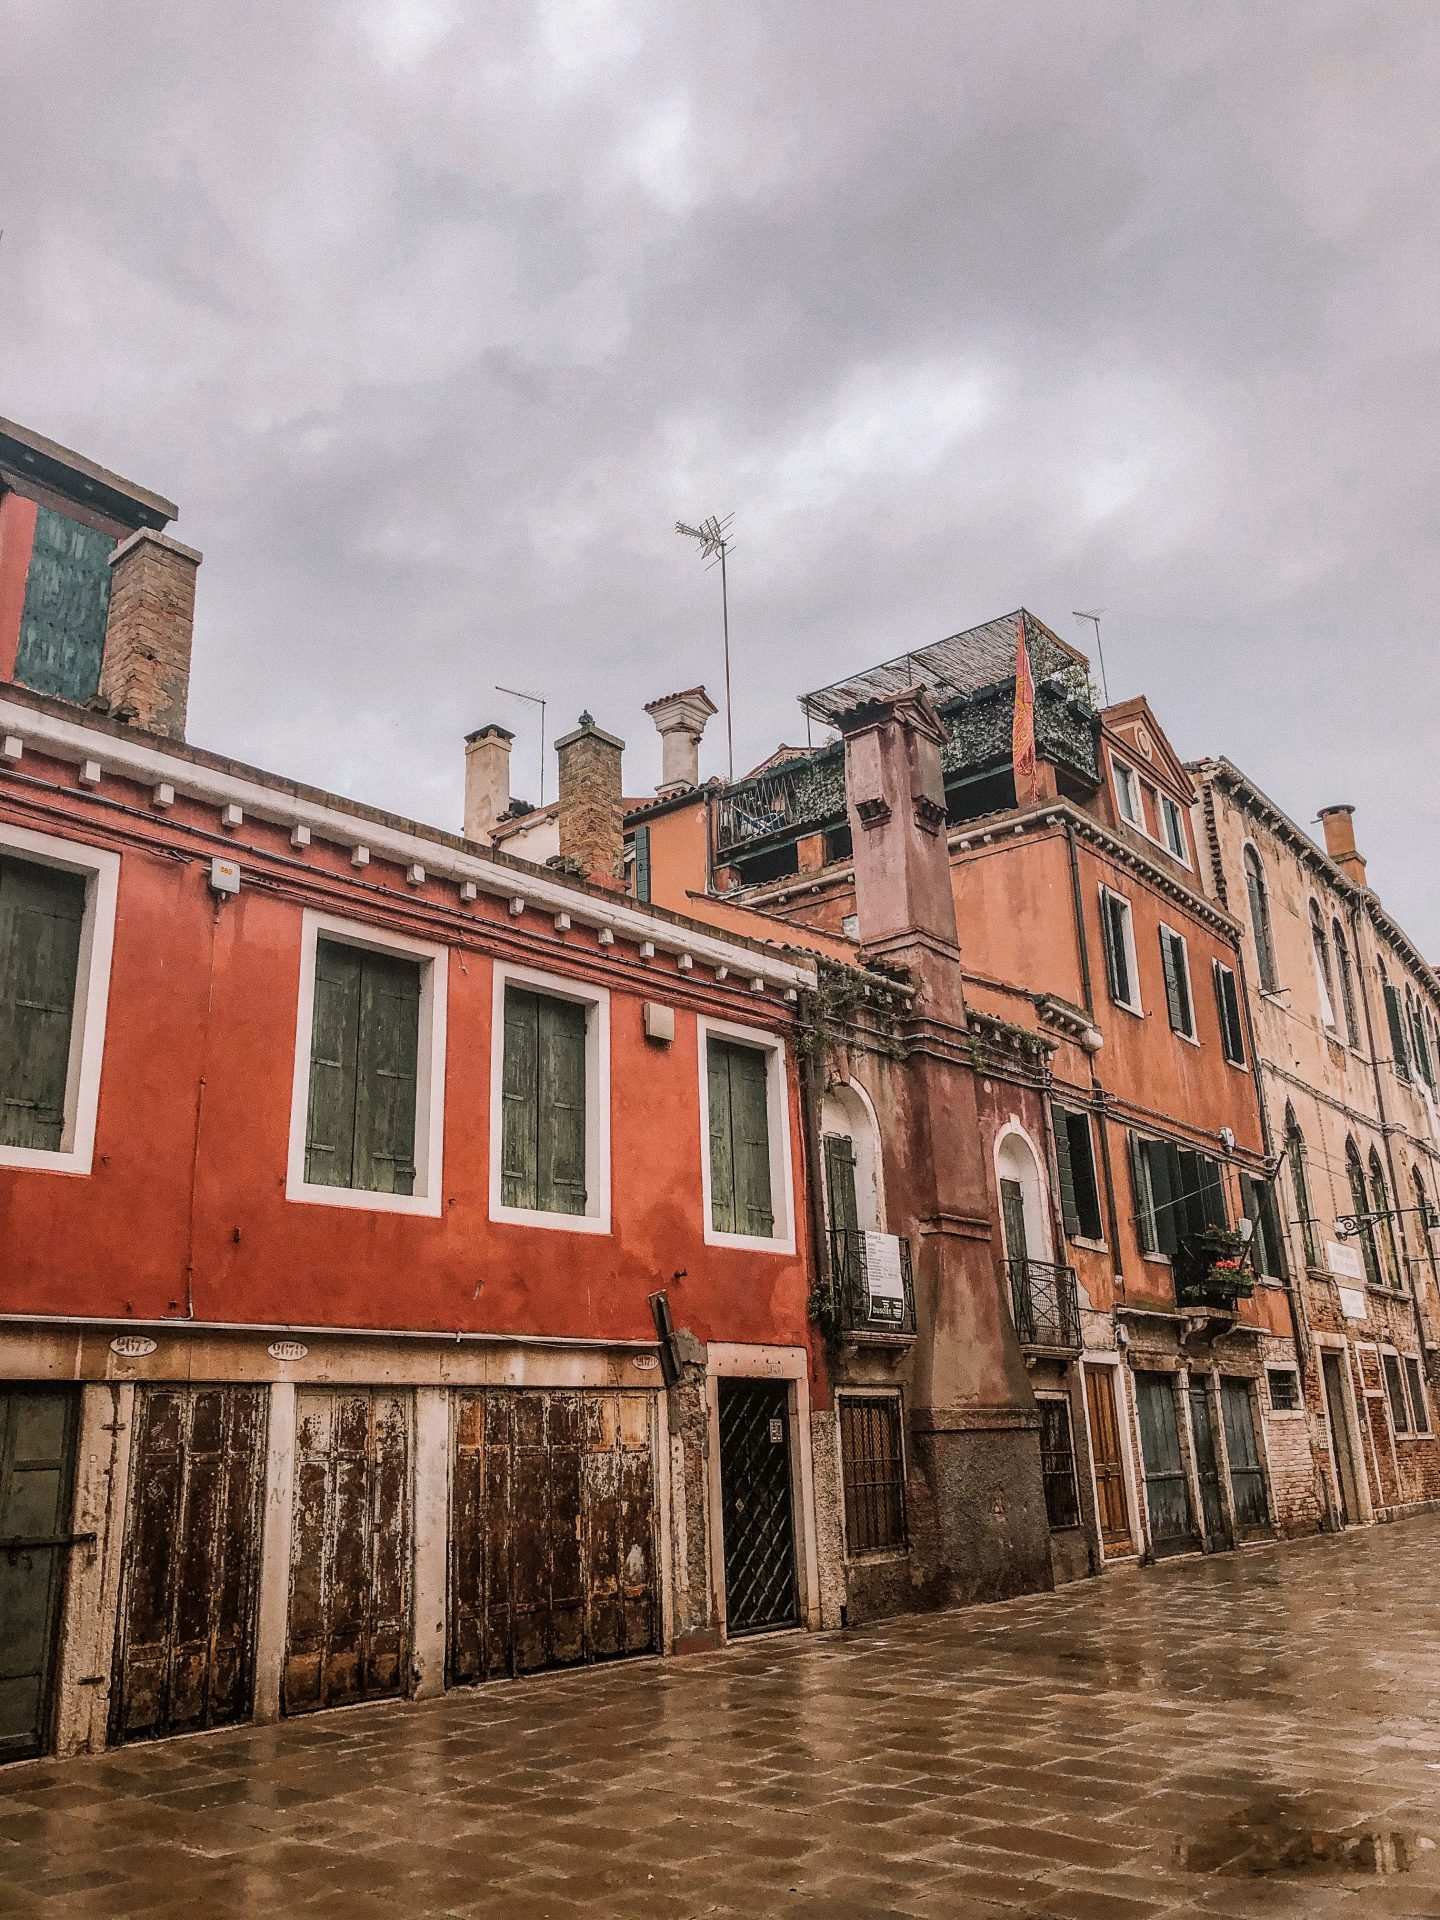 Buildings on a recently wet street in Venice, Italy